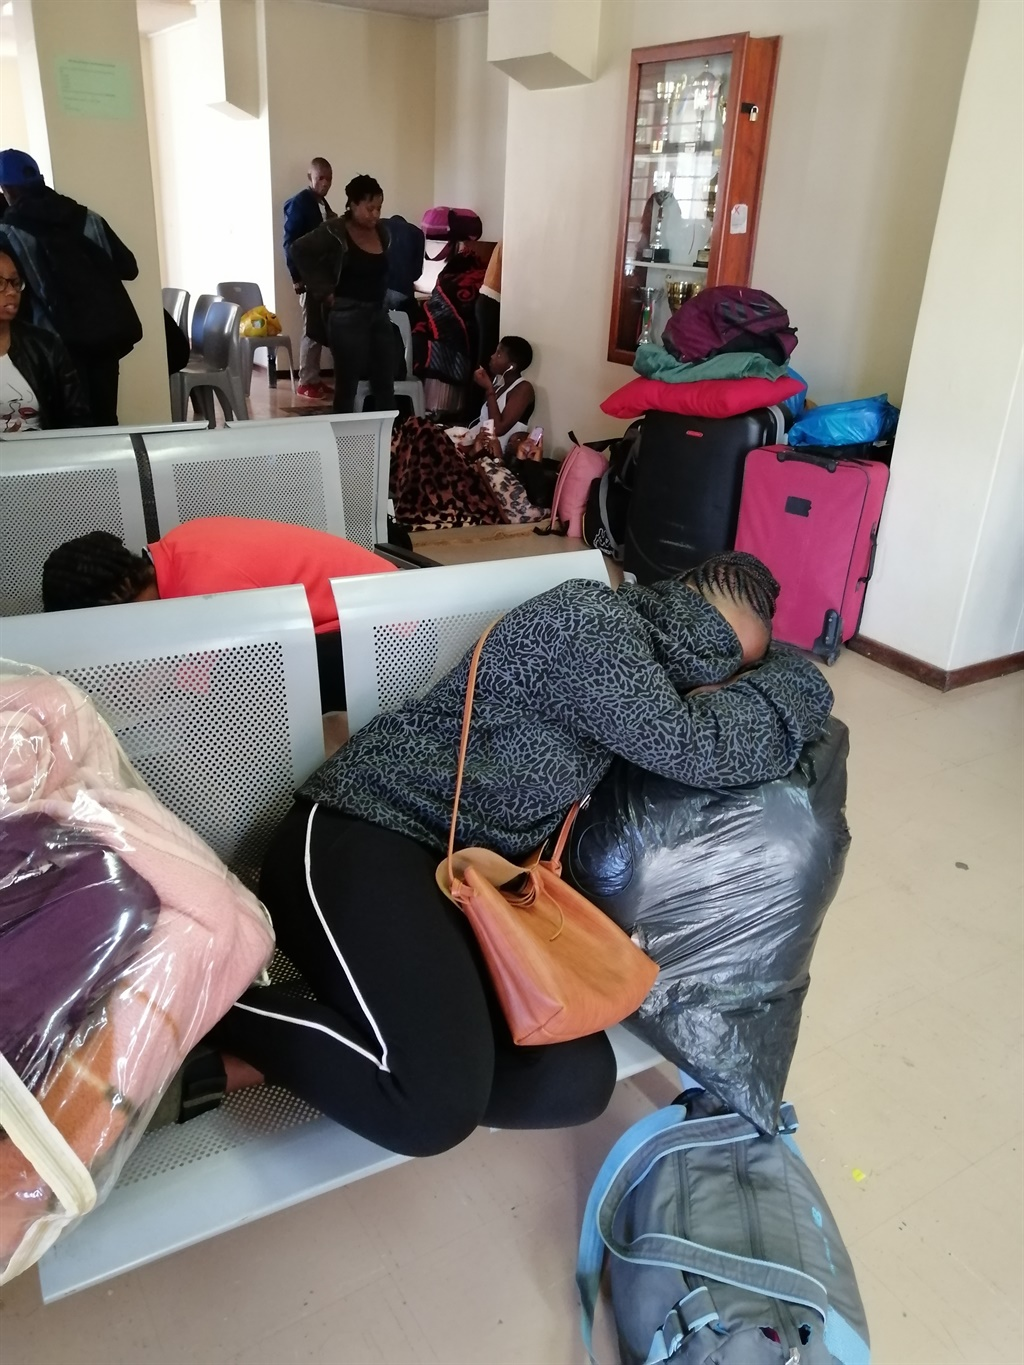 CPUT students sleeping on chairs as they await accommodation.